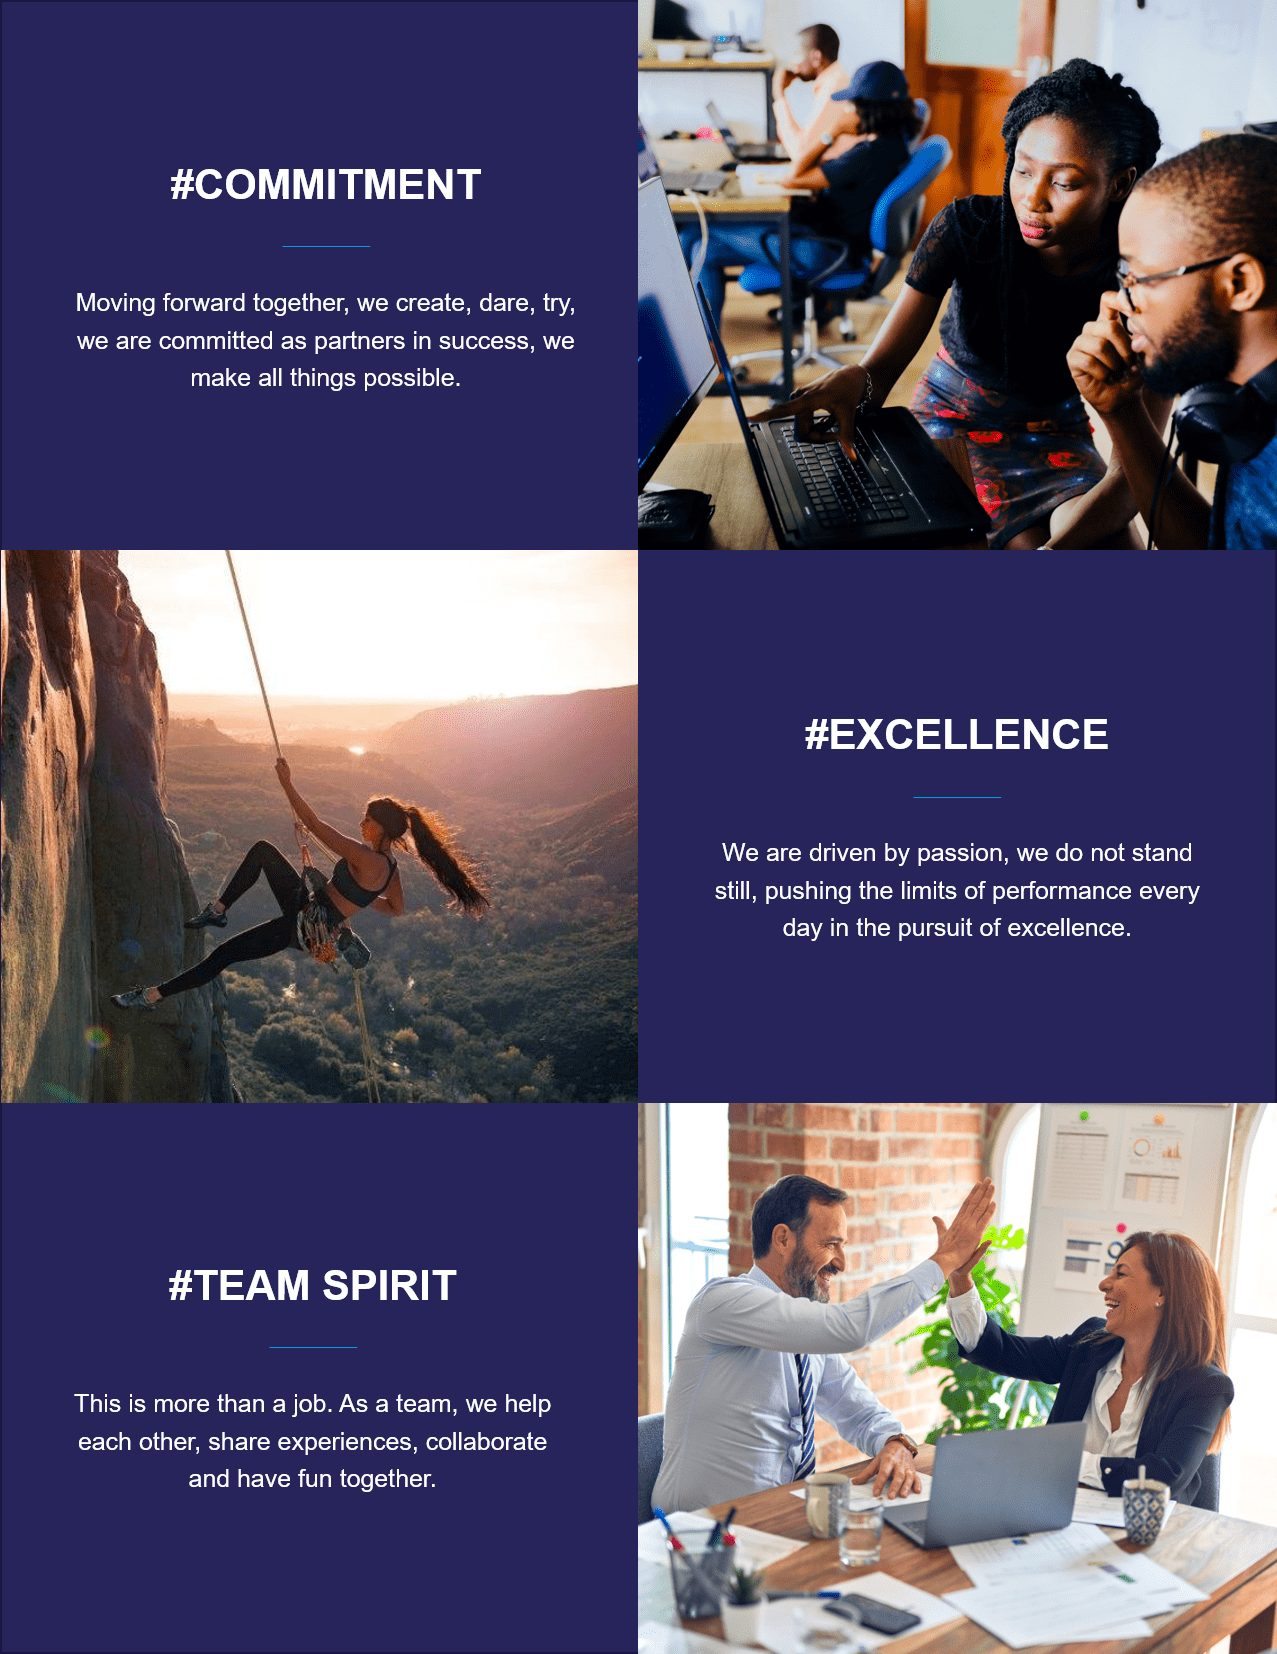 MP Core Values Commitment - Excellence - Team Spirit